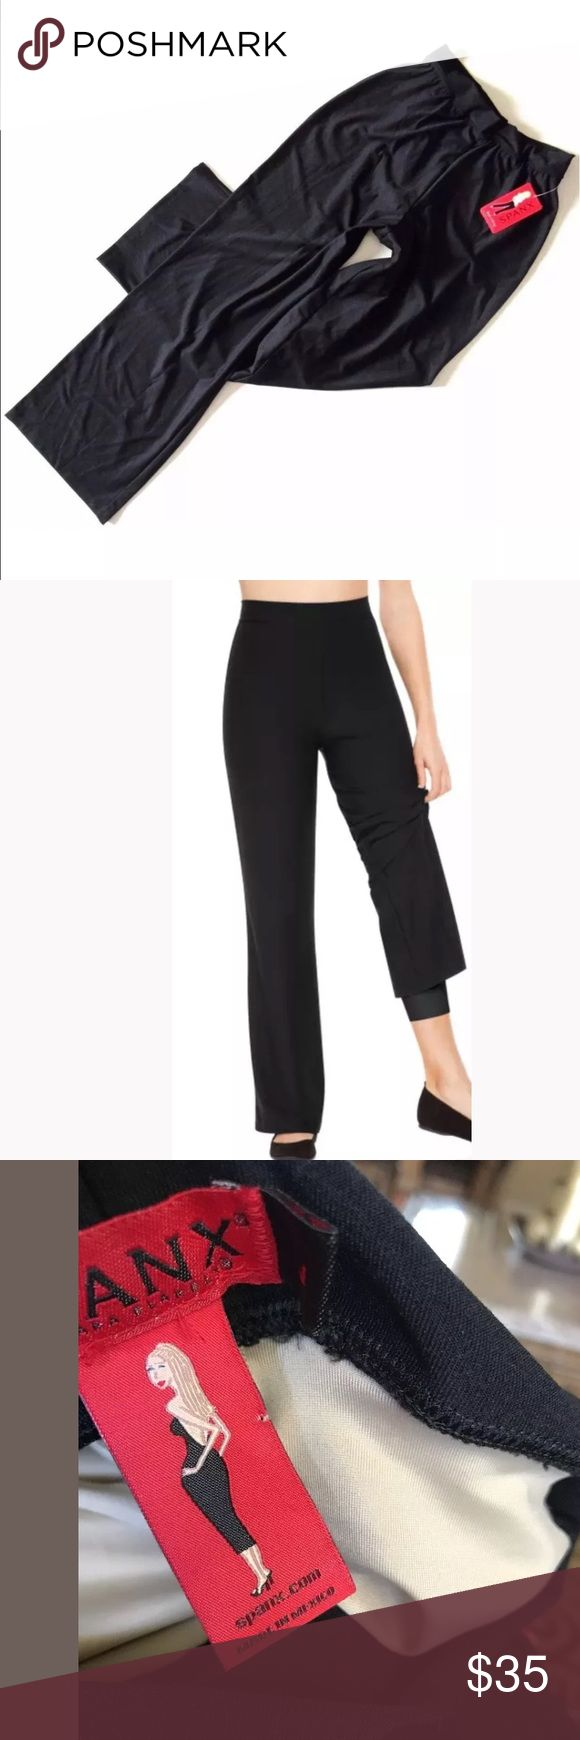 New spanxs pants with built in liner Spanx Bod A Bing Pants with Secret Slimming Liner  Black - Size 12-14 New with Tags wide leg pants SPANX Pants Wide Leg